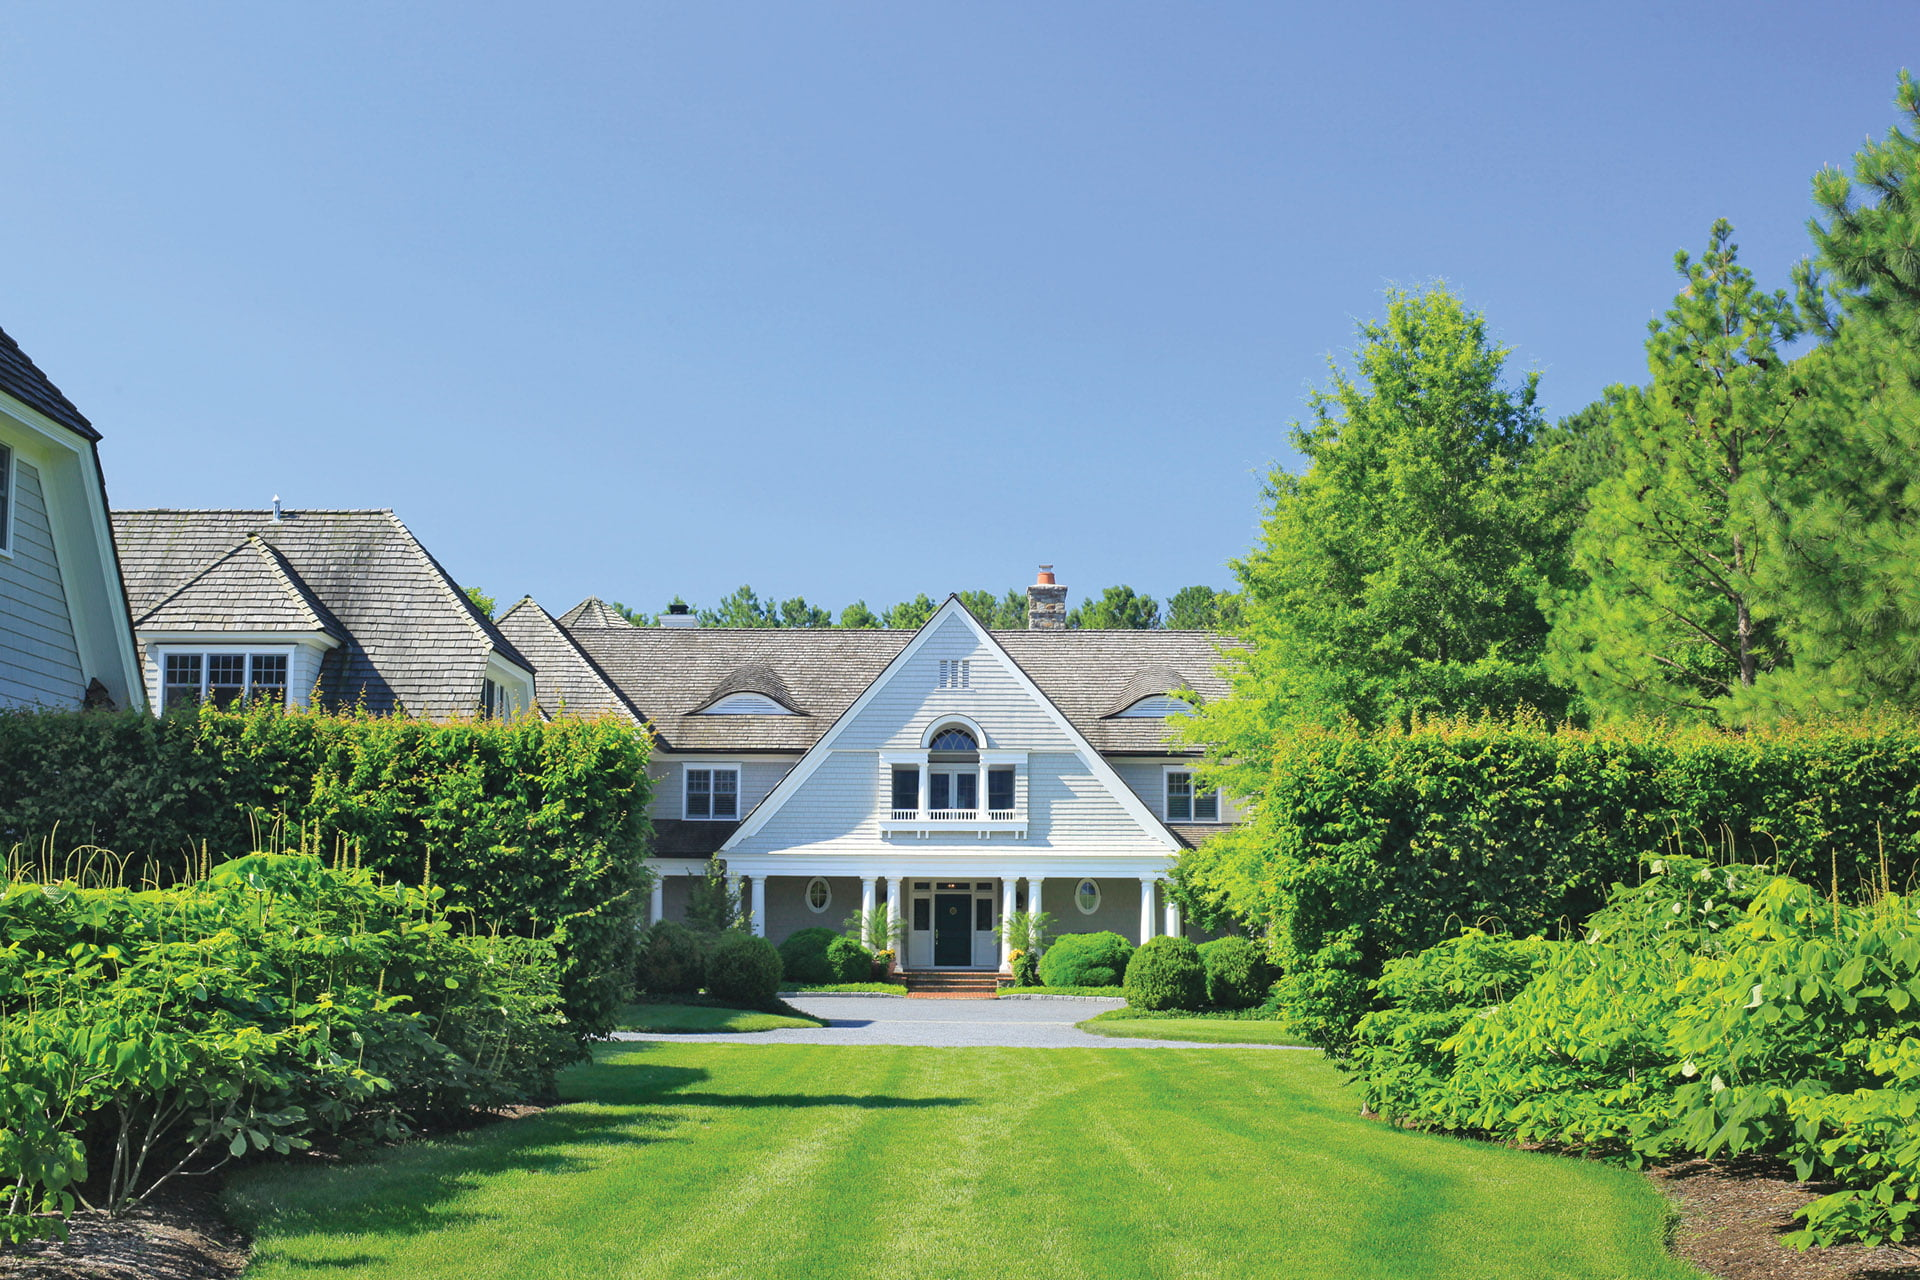 Parking court welcomes visitors to the Shingle-style house, designed by Grina-Lavie Architects.